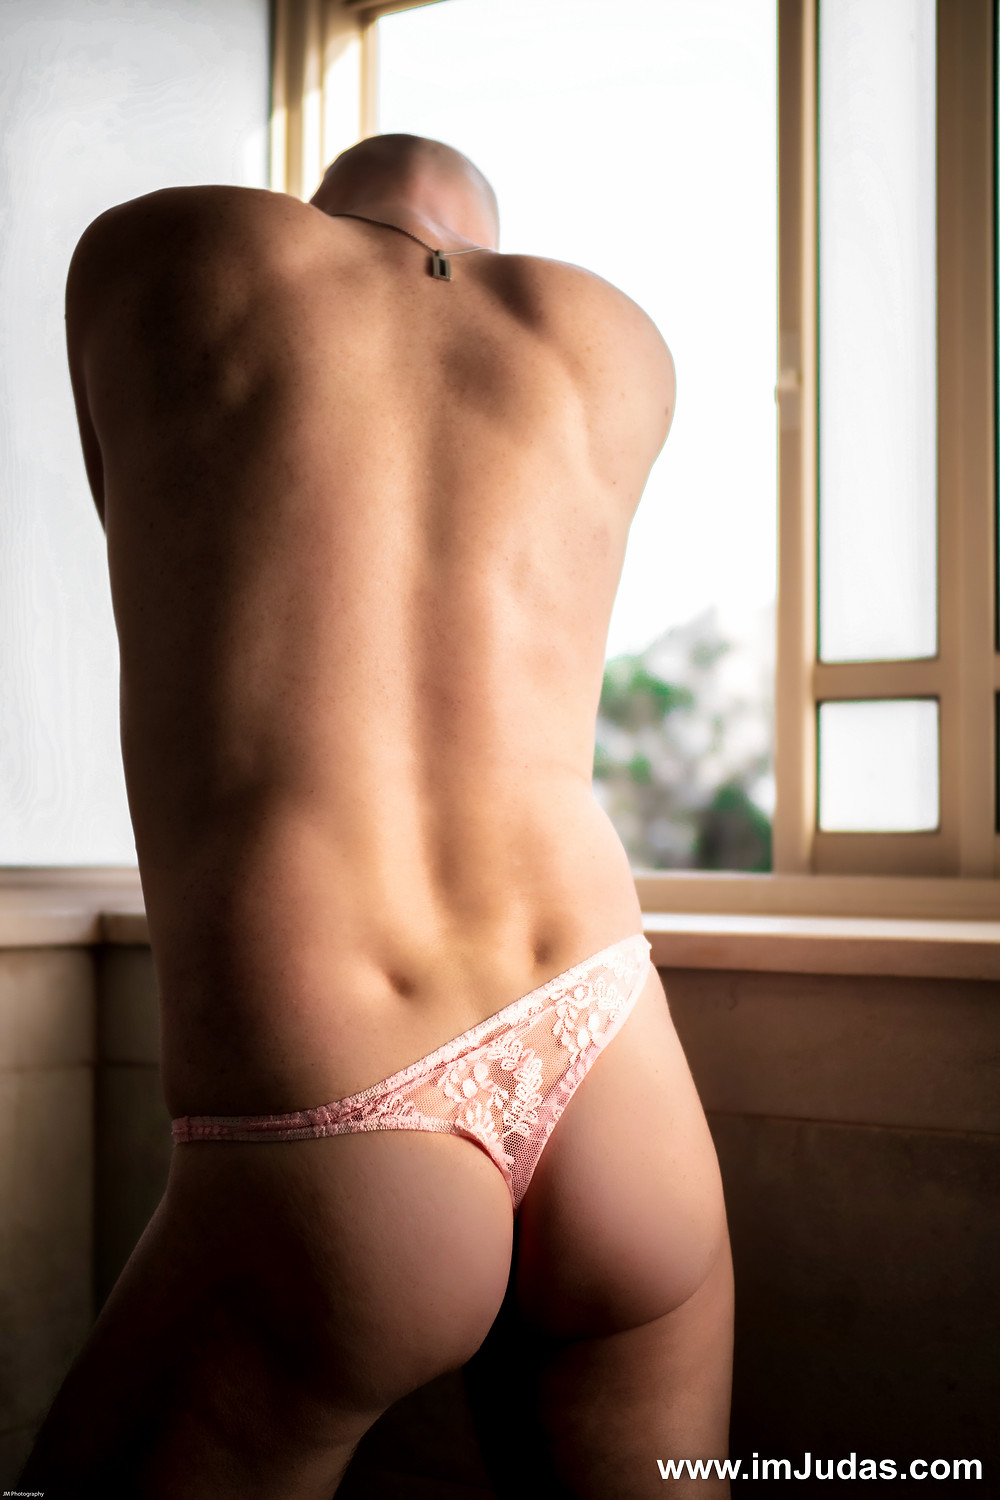 A man wearing a lace thong